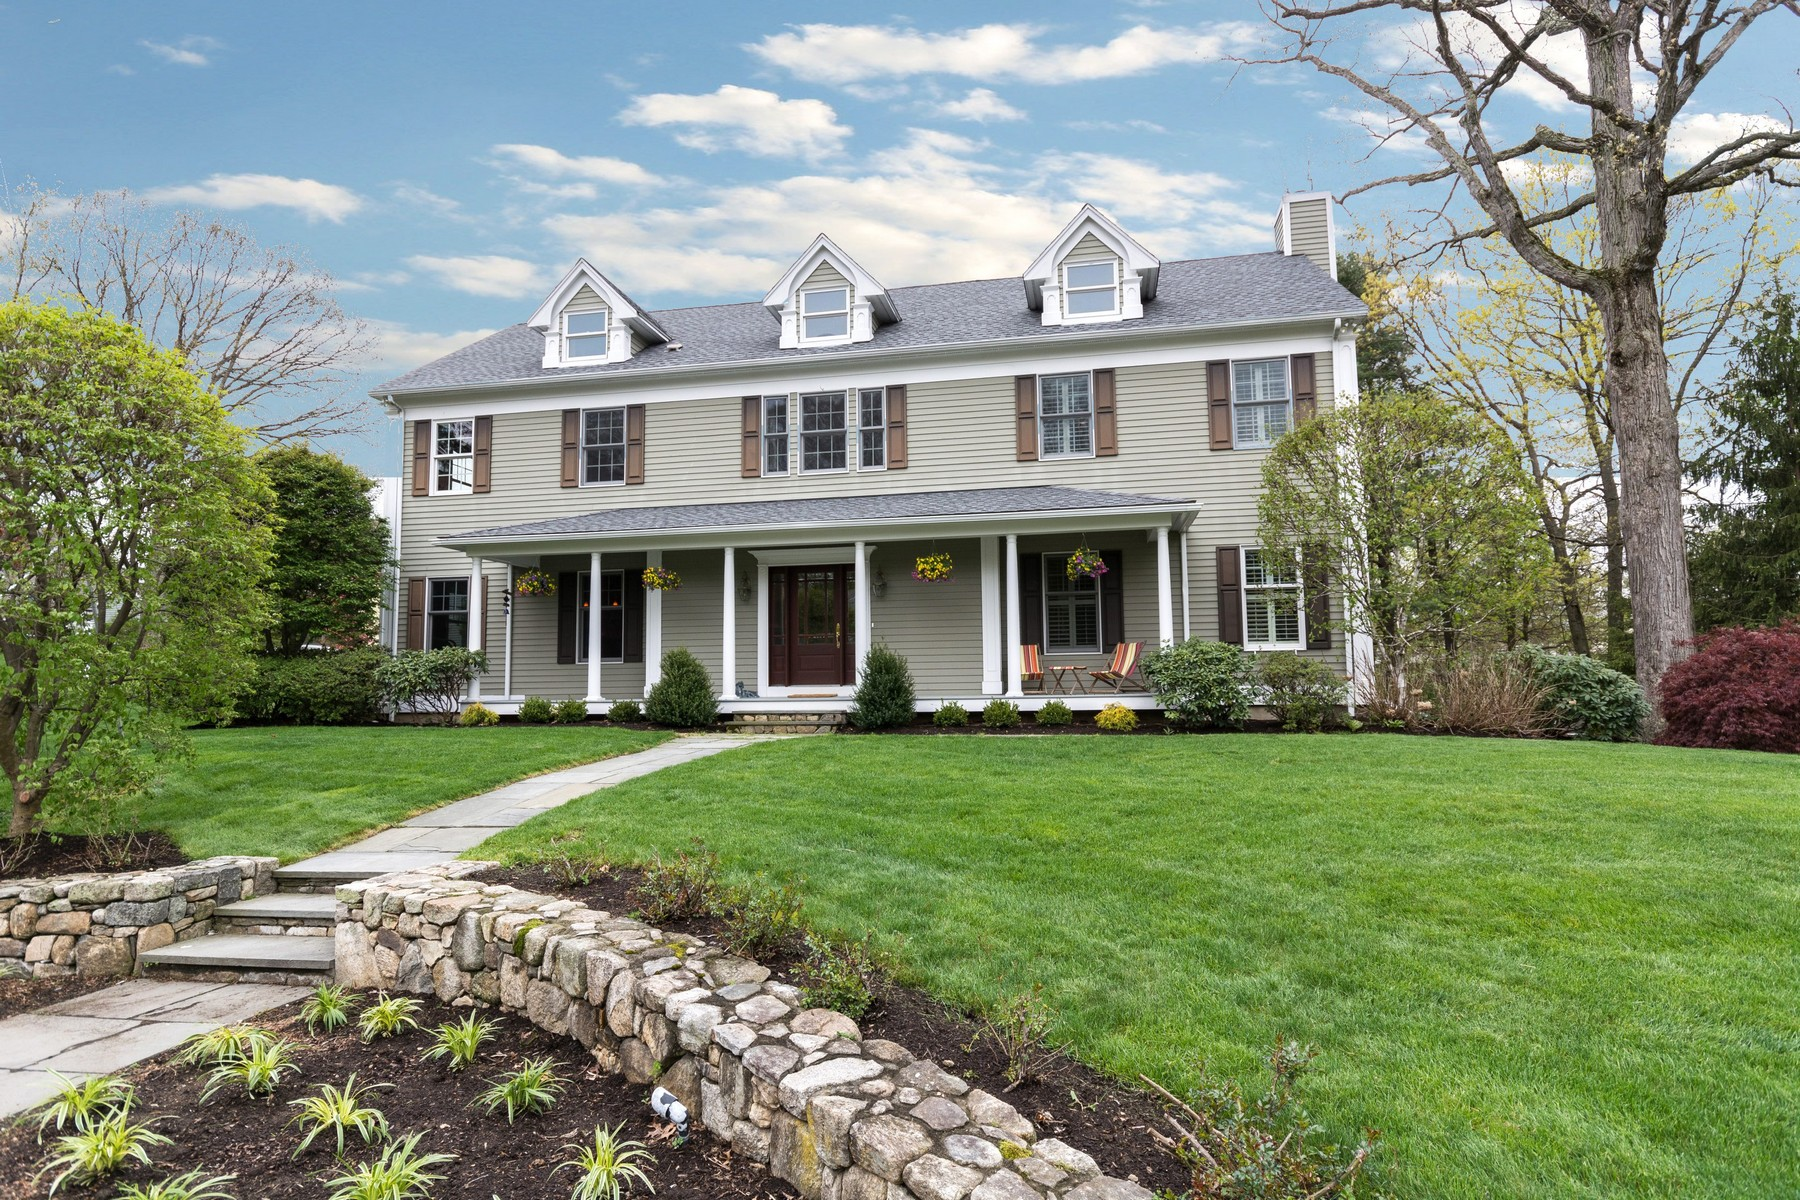 Single Family Home for Sale at Just What You've Been Looking For! 39 Phillips Lane Darien, Connecticut, 06820 United States